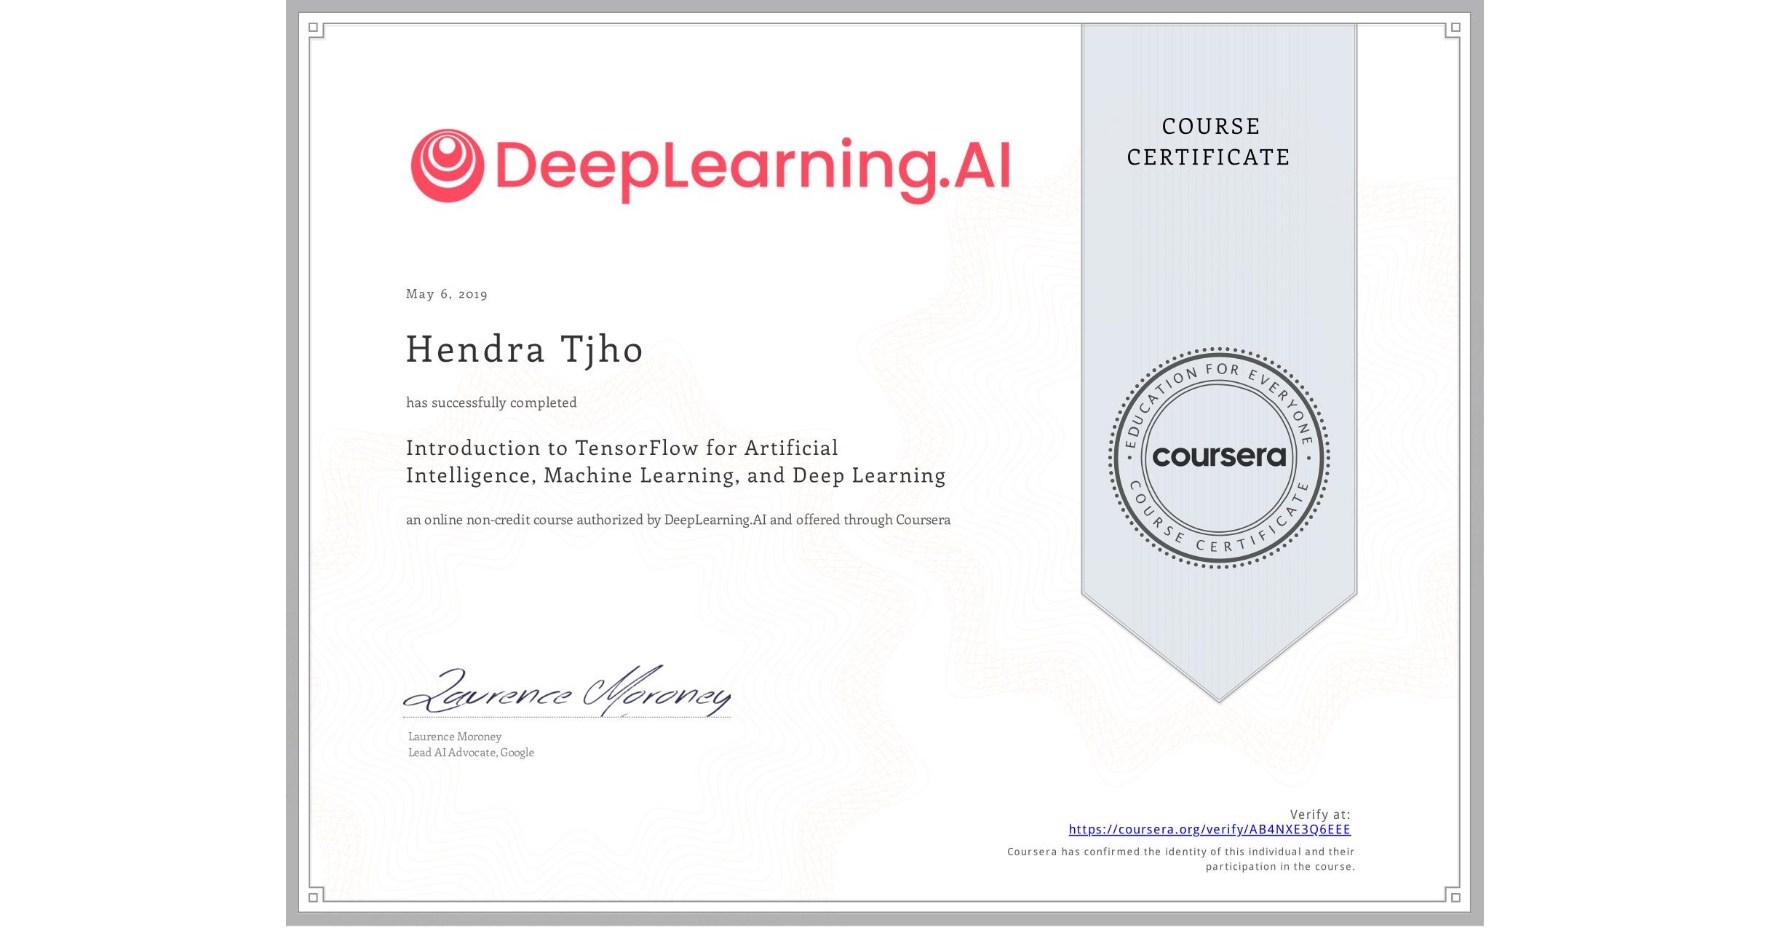 View certificate for Hendra Tjho, Introduction to TensorFlow for Artificial Intelligence, Machine Learning, and Deep Learning, an online non-credit course authorized by DeepLearning.AI and offered through Coursera